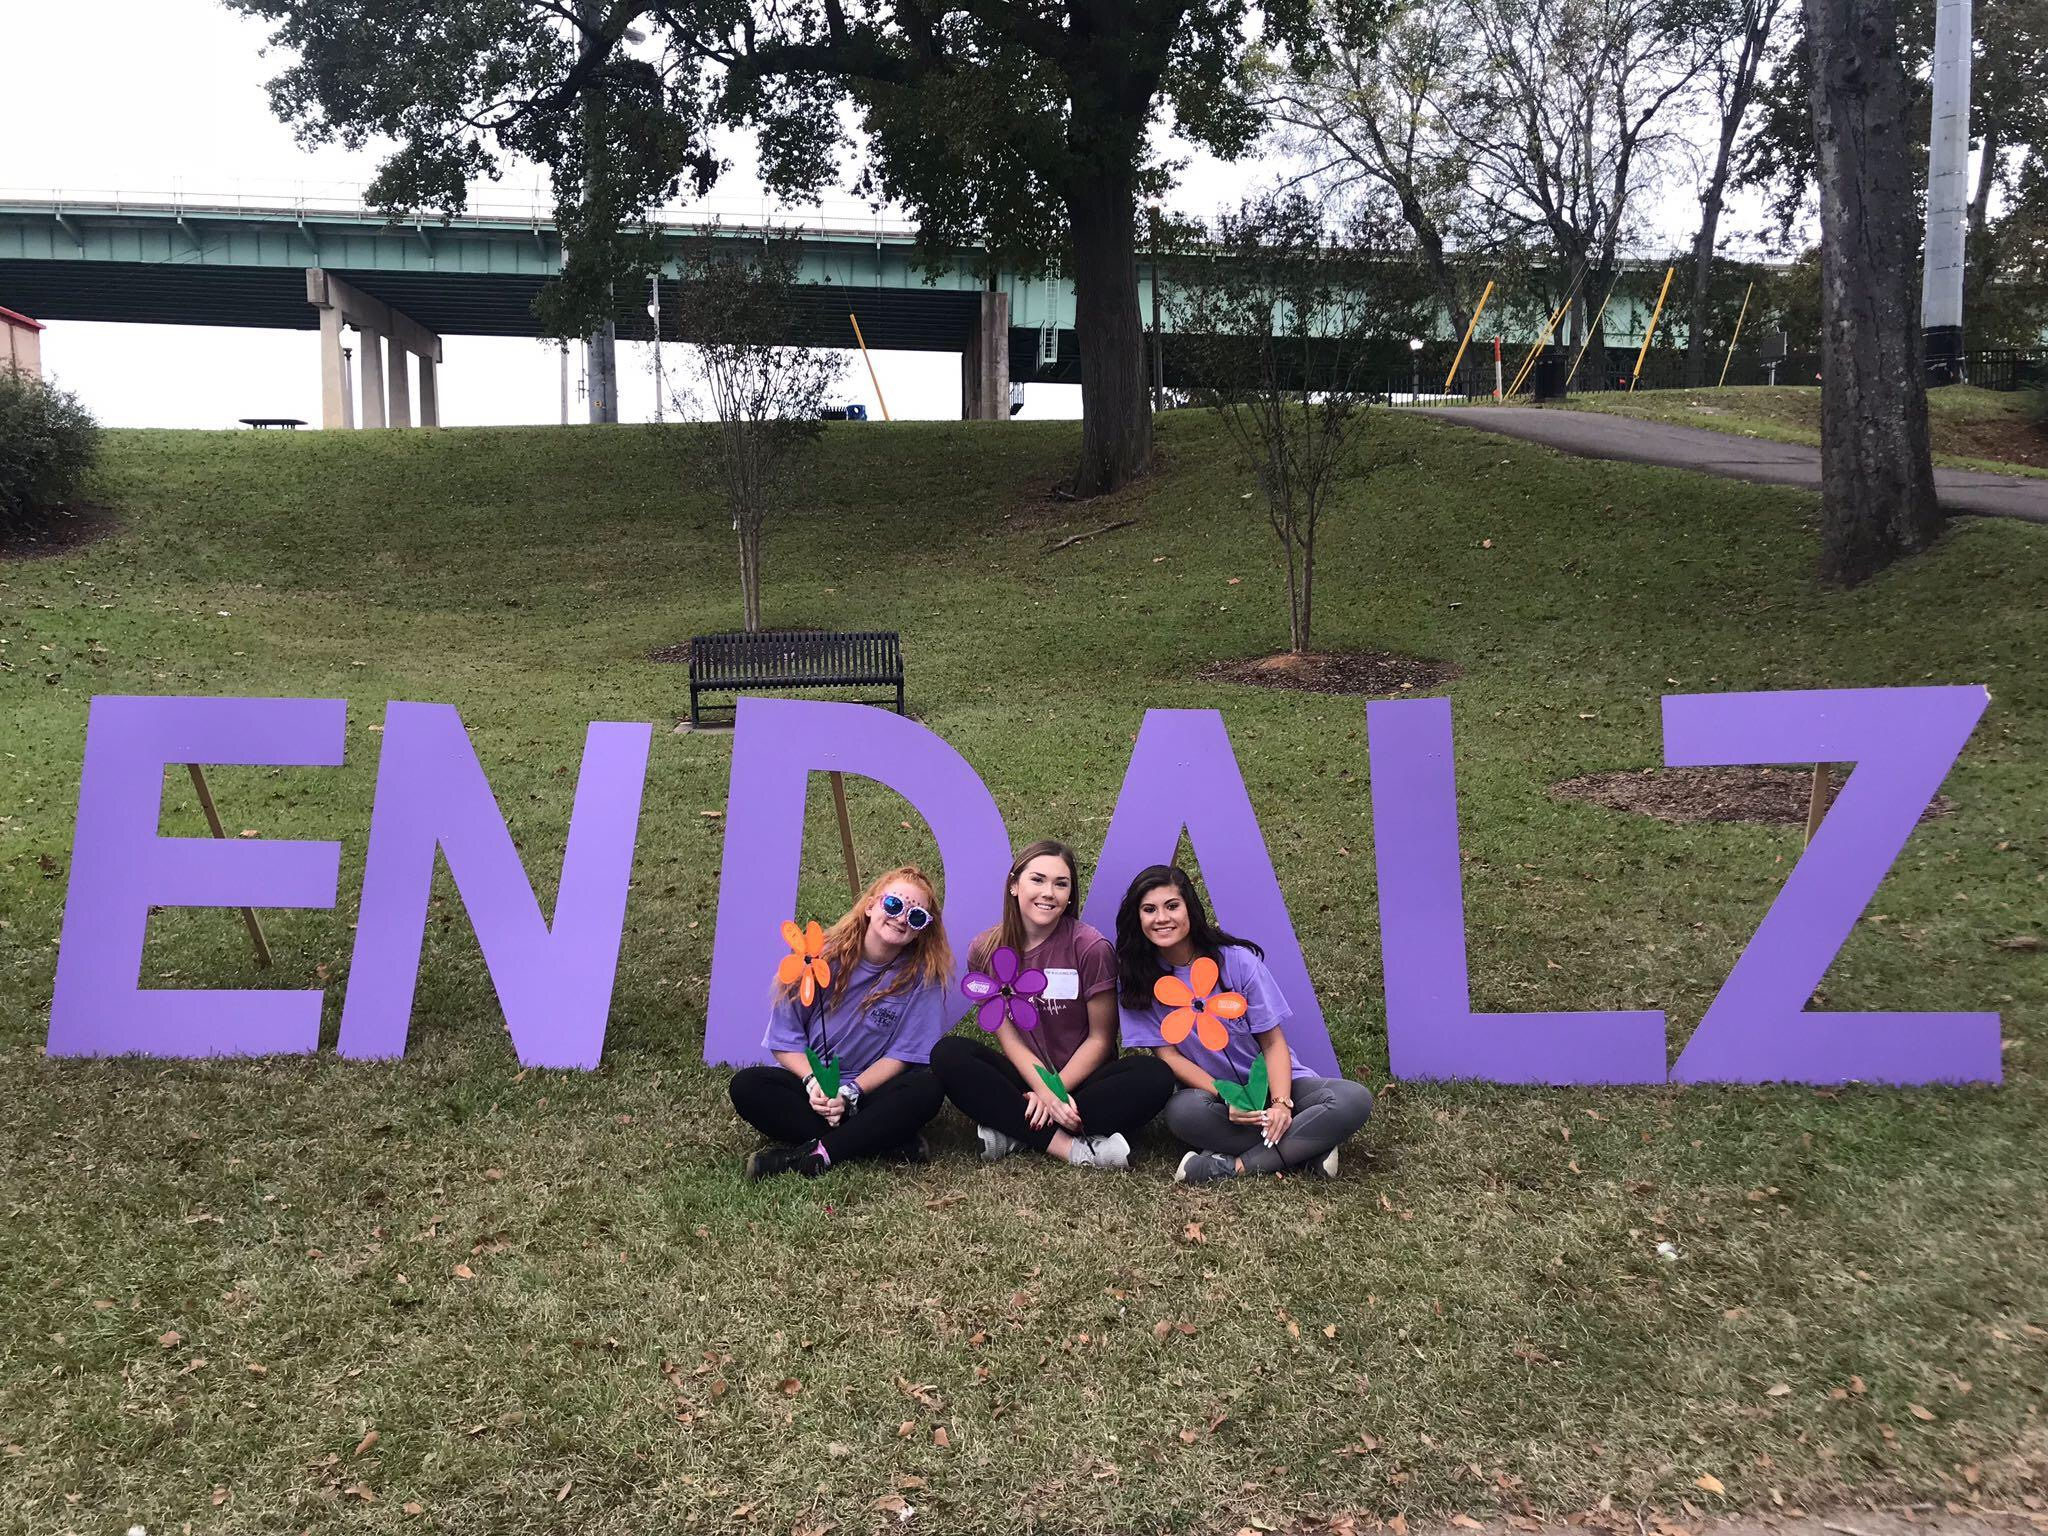 WALK TO END ALZHEIMER'S 2019